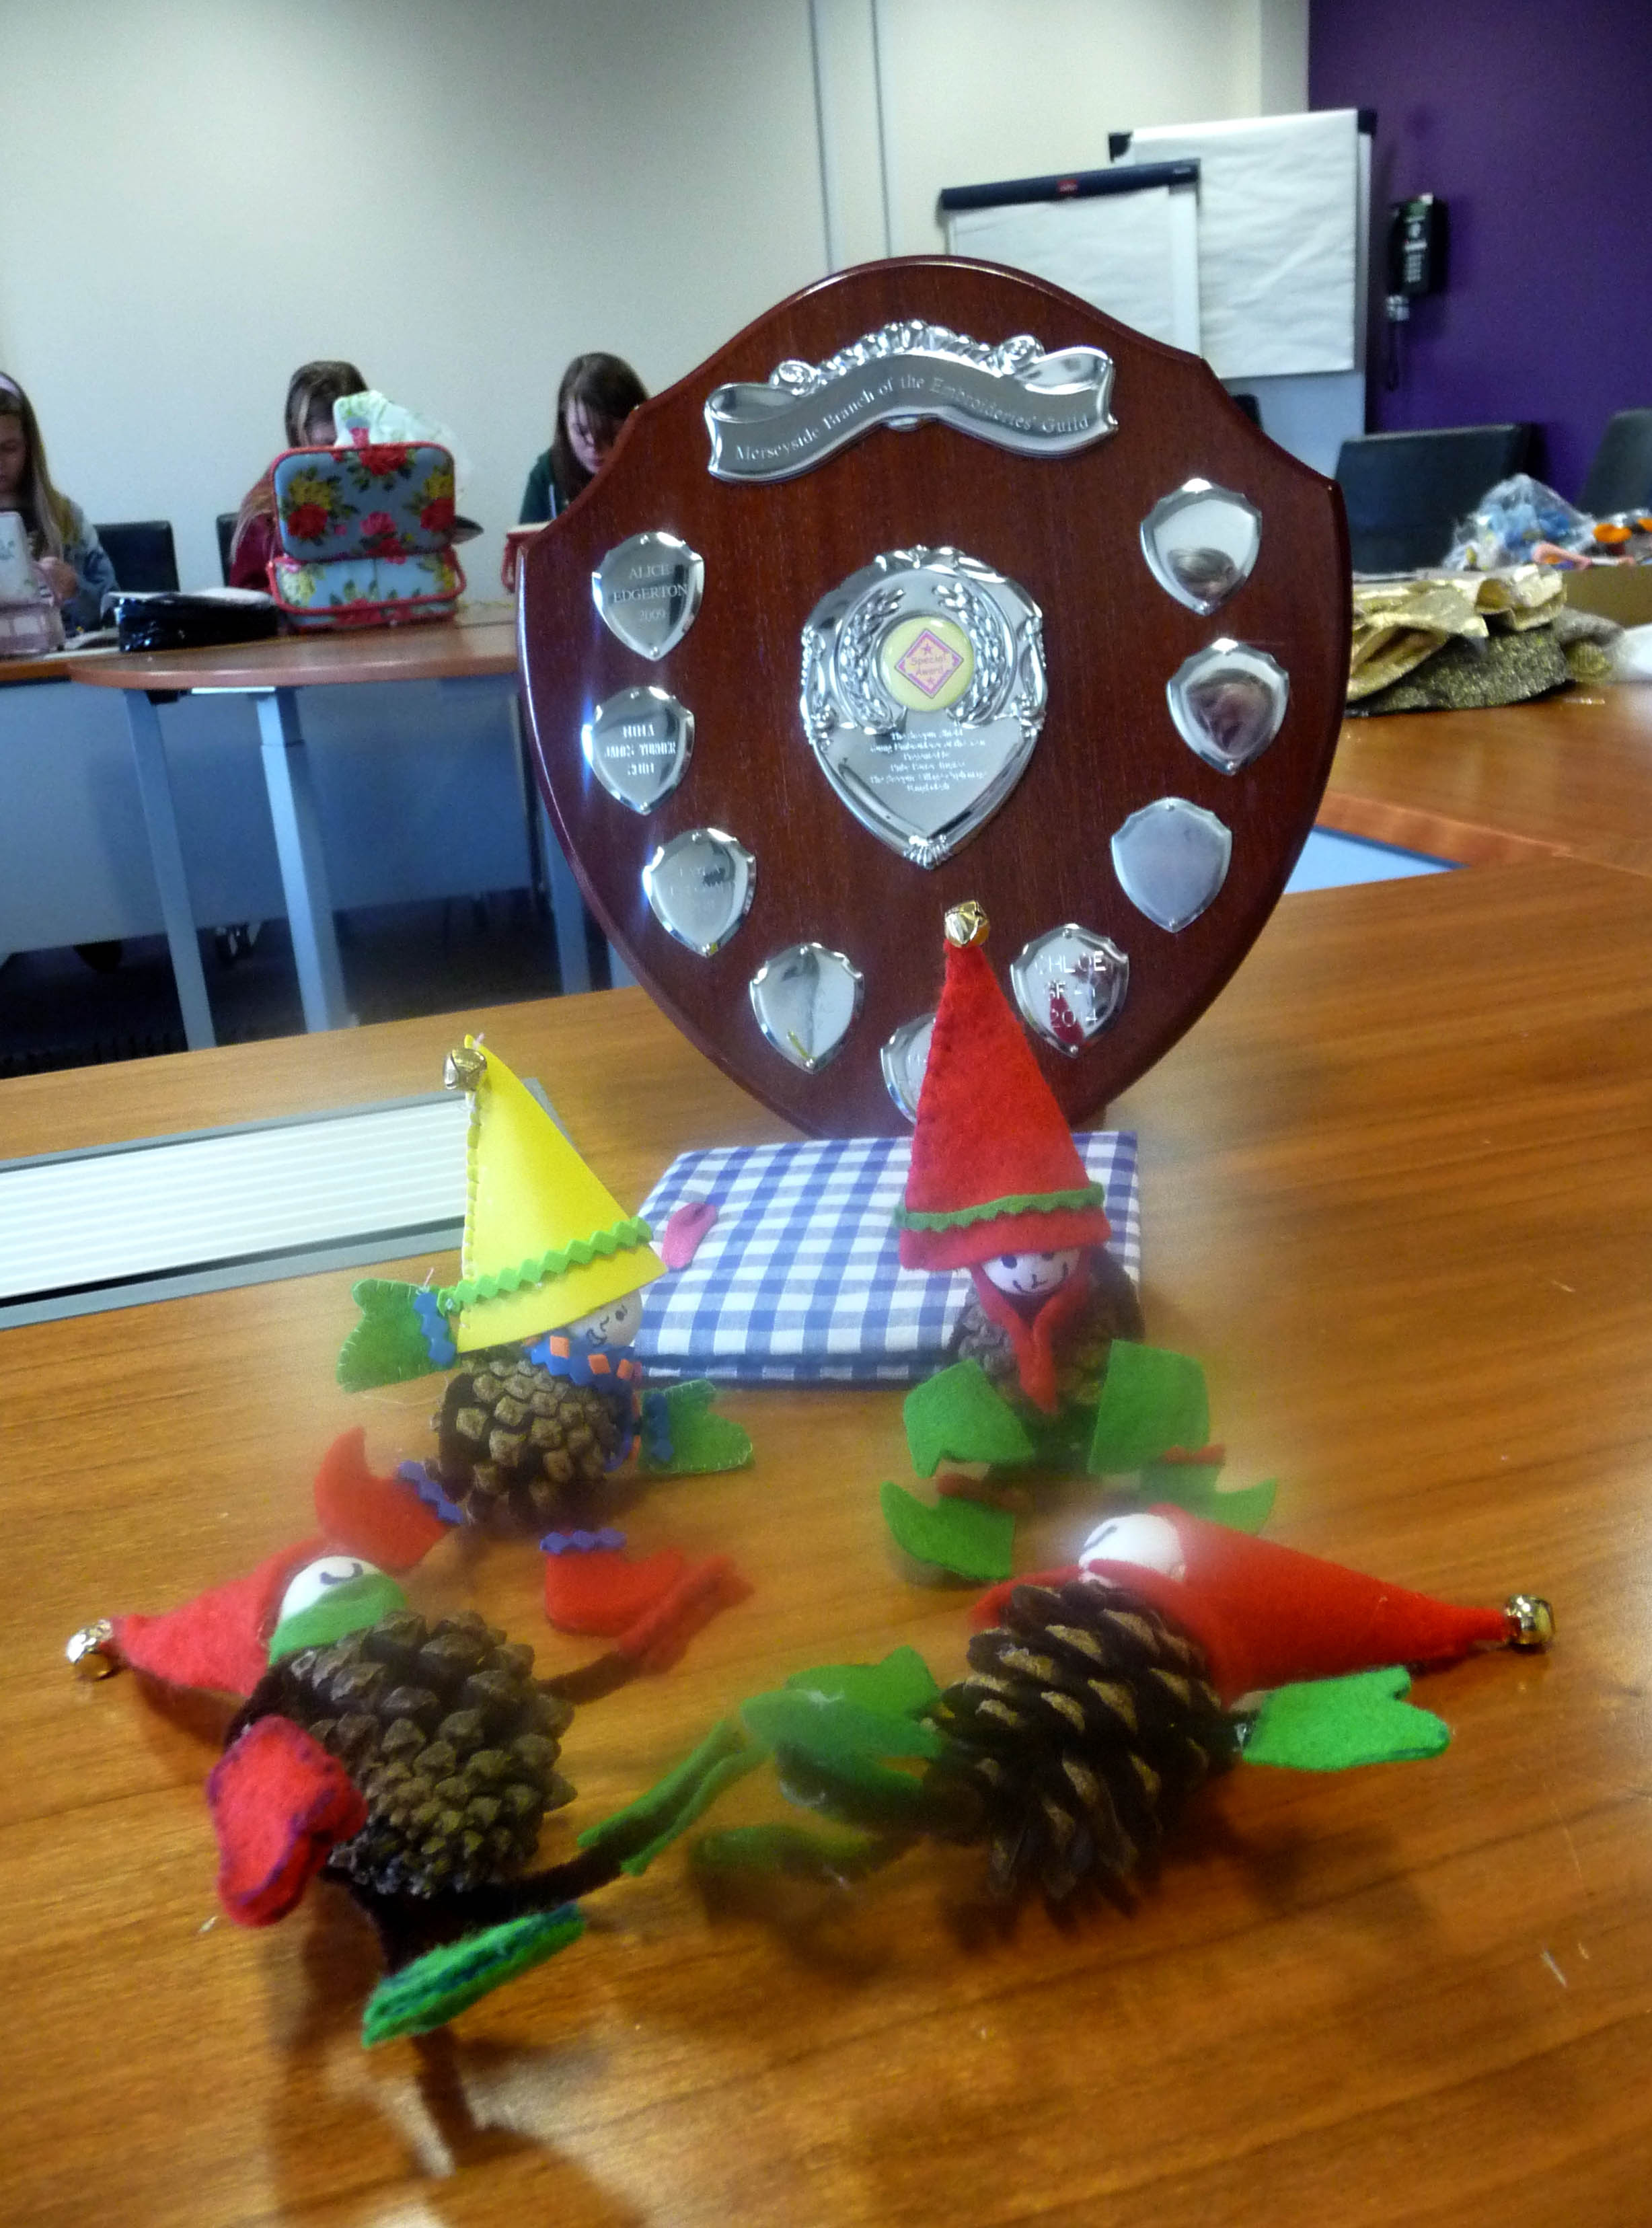 some little elves made from pinecones and the Sreepur shield which is awarded to Merseyside Young Embroiderer of the Year